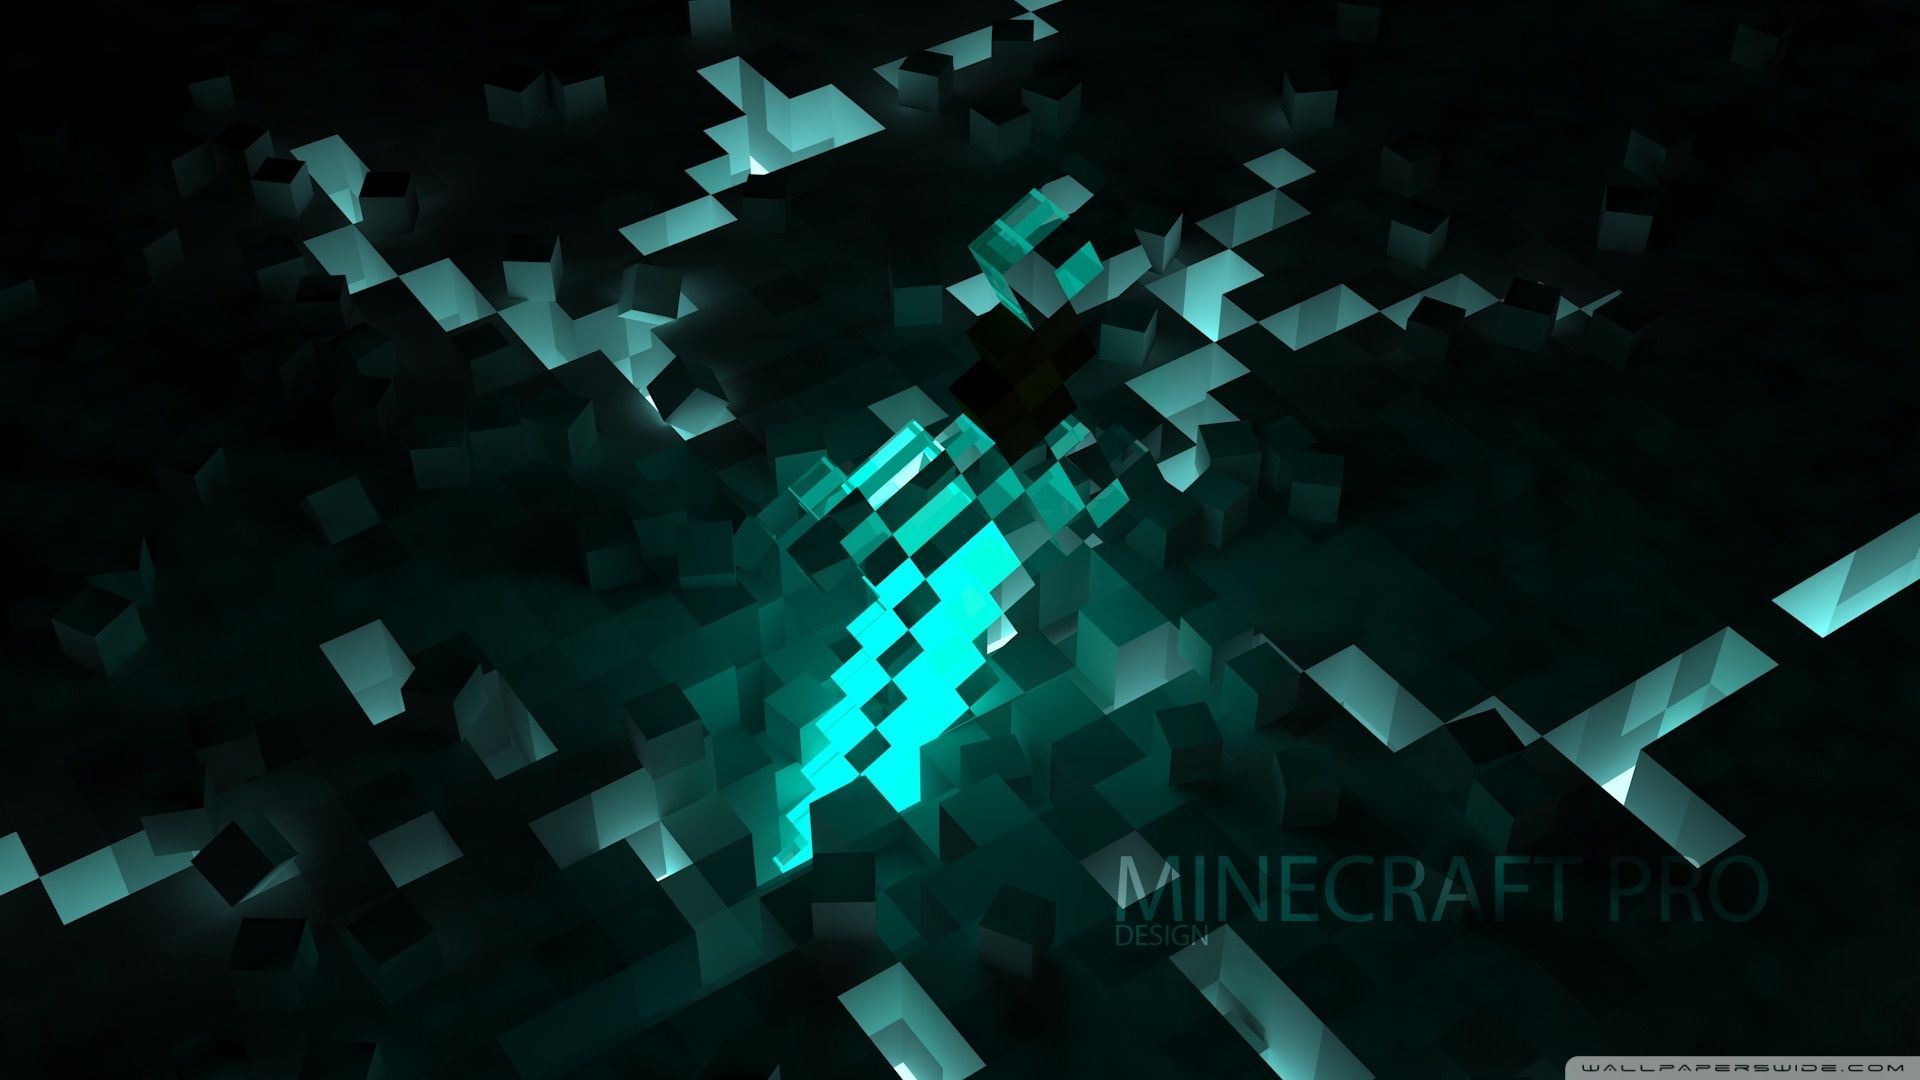 Minecraft Creeper Backgrounds Wallpaper HD Herobrine